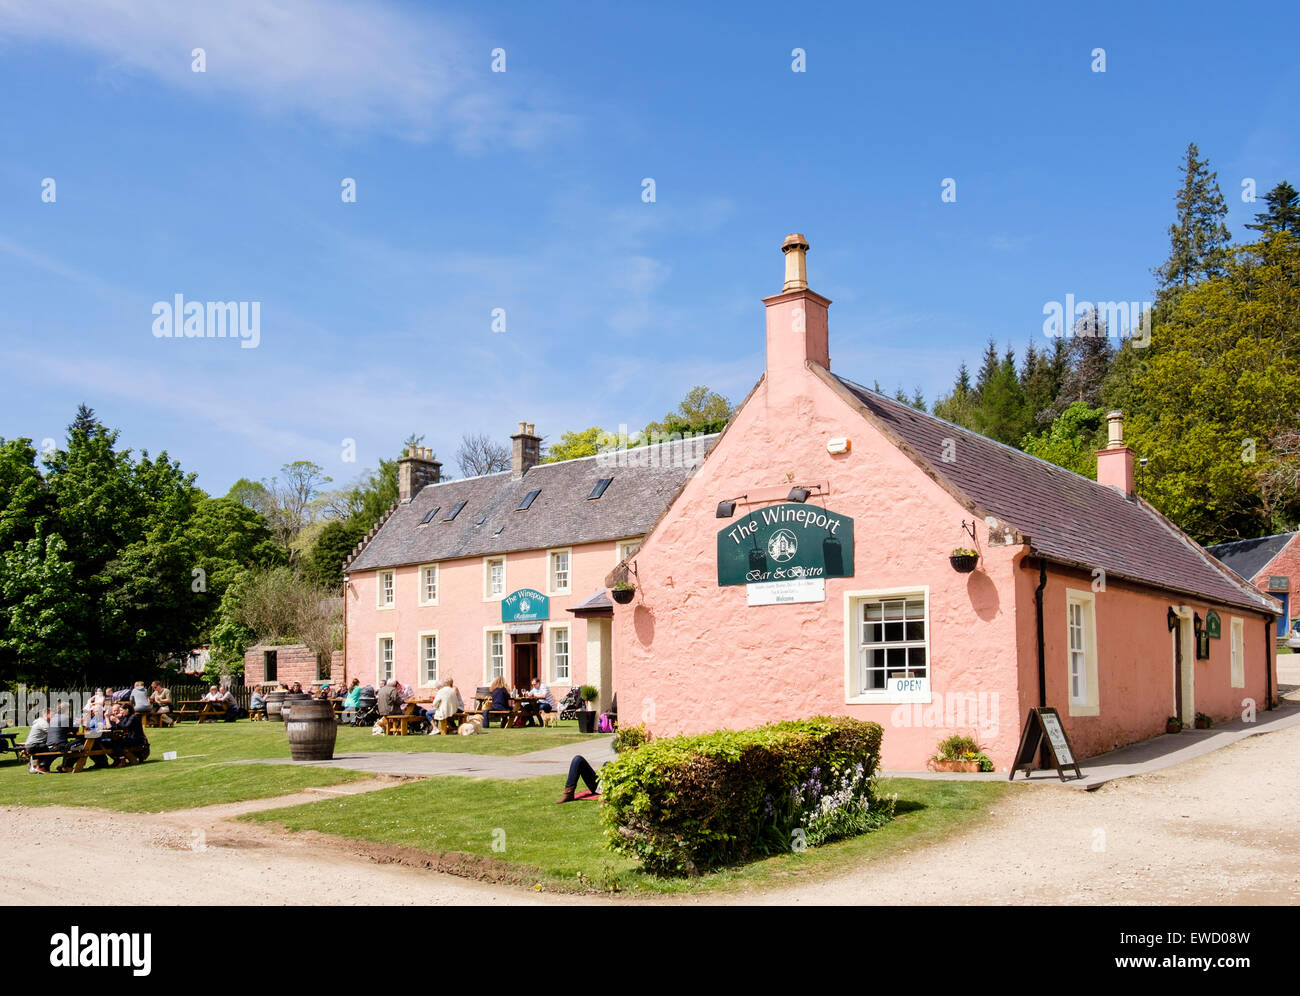 People dining outside the Wineport bar and bistro restaurant near Brodick, Isle of Arran, North Ayrshire, Scotland, - Stock Image